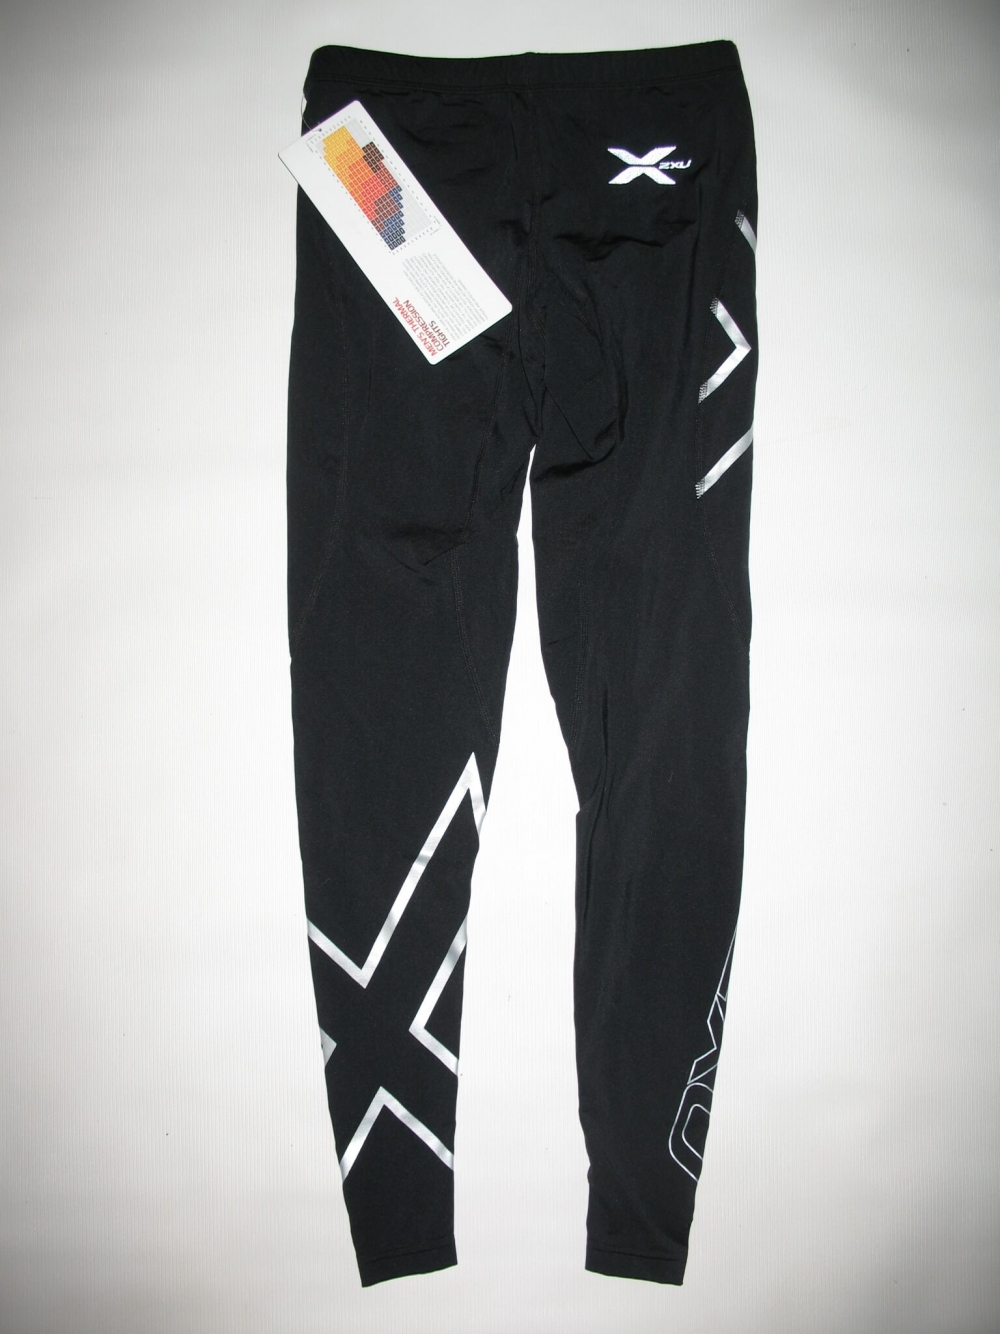 Штаны  2XU thermal compression tights unisex (размер XS) - 2